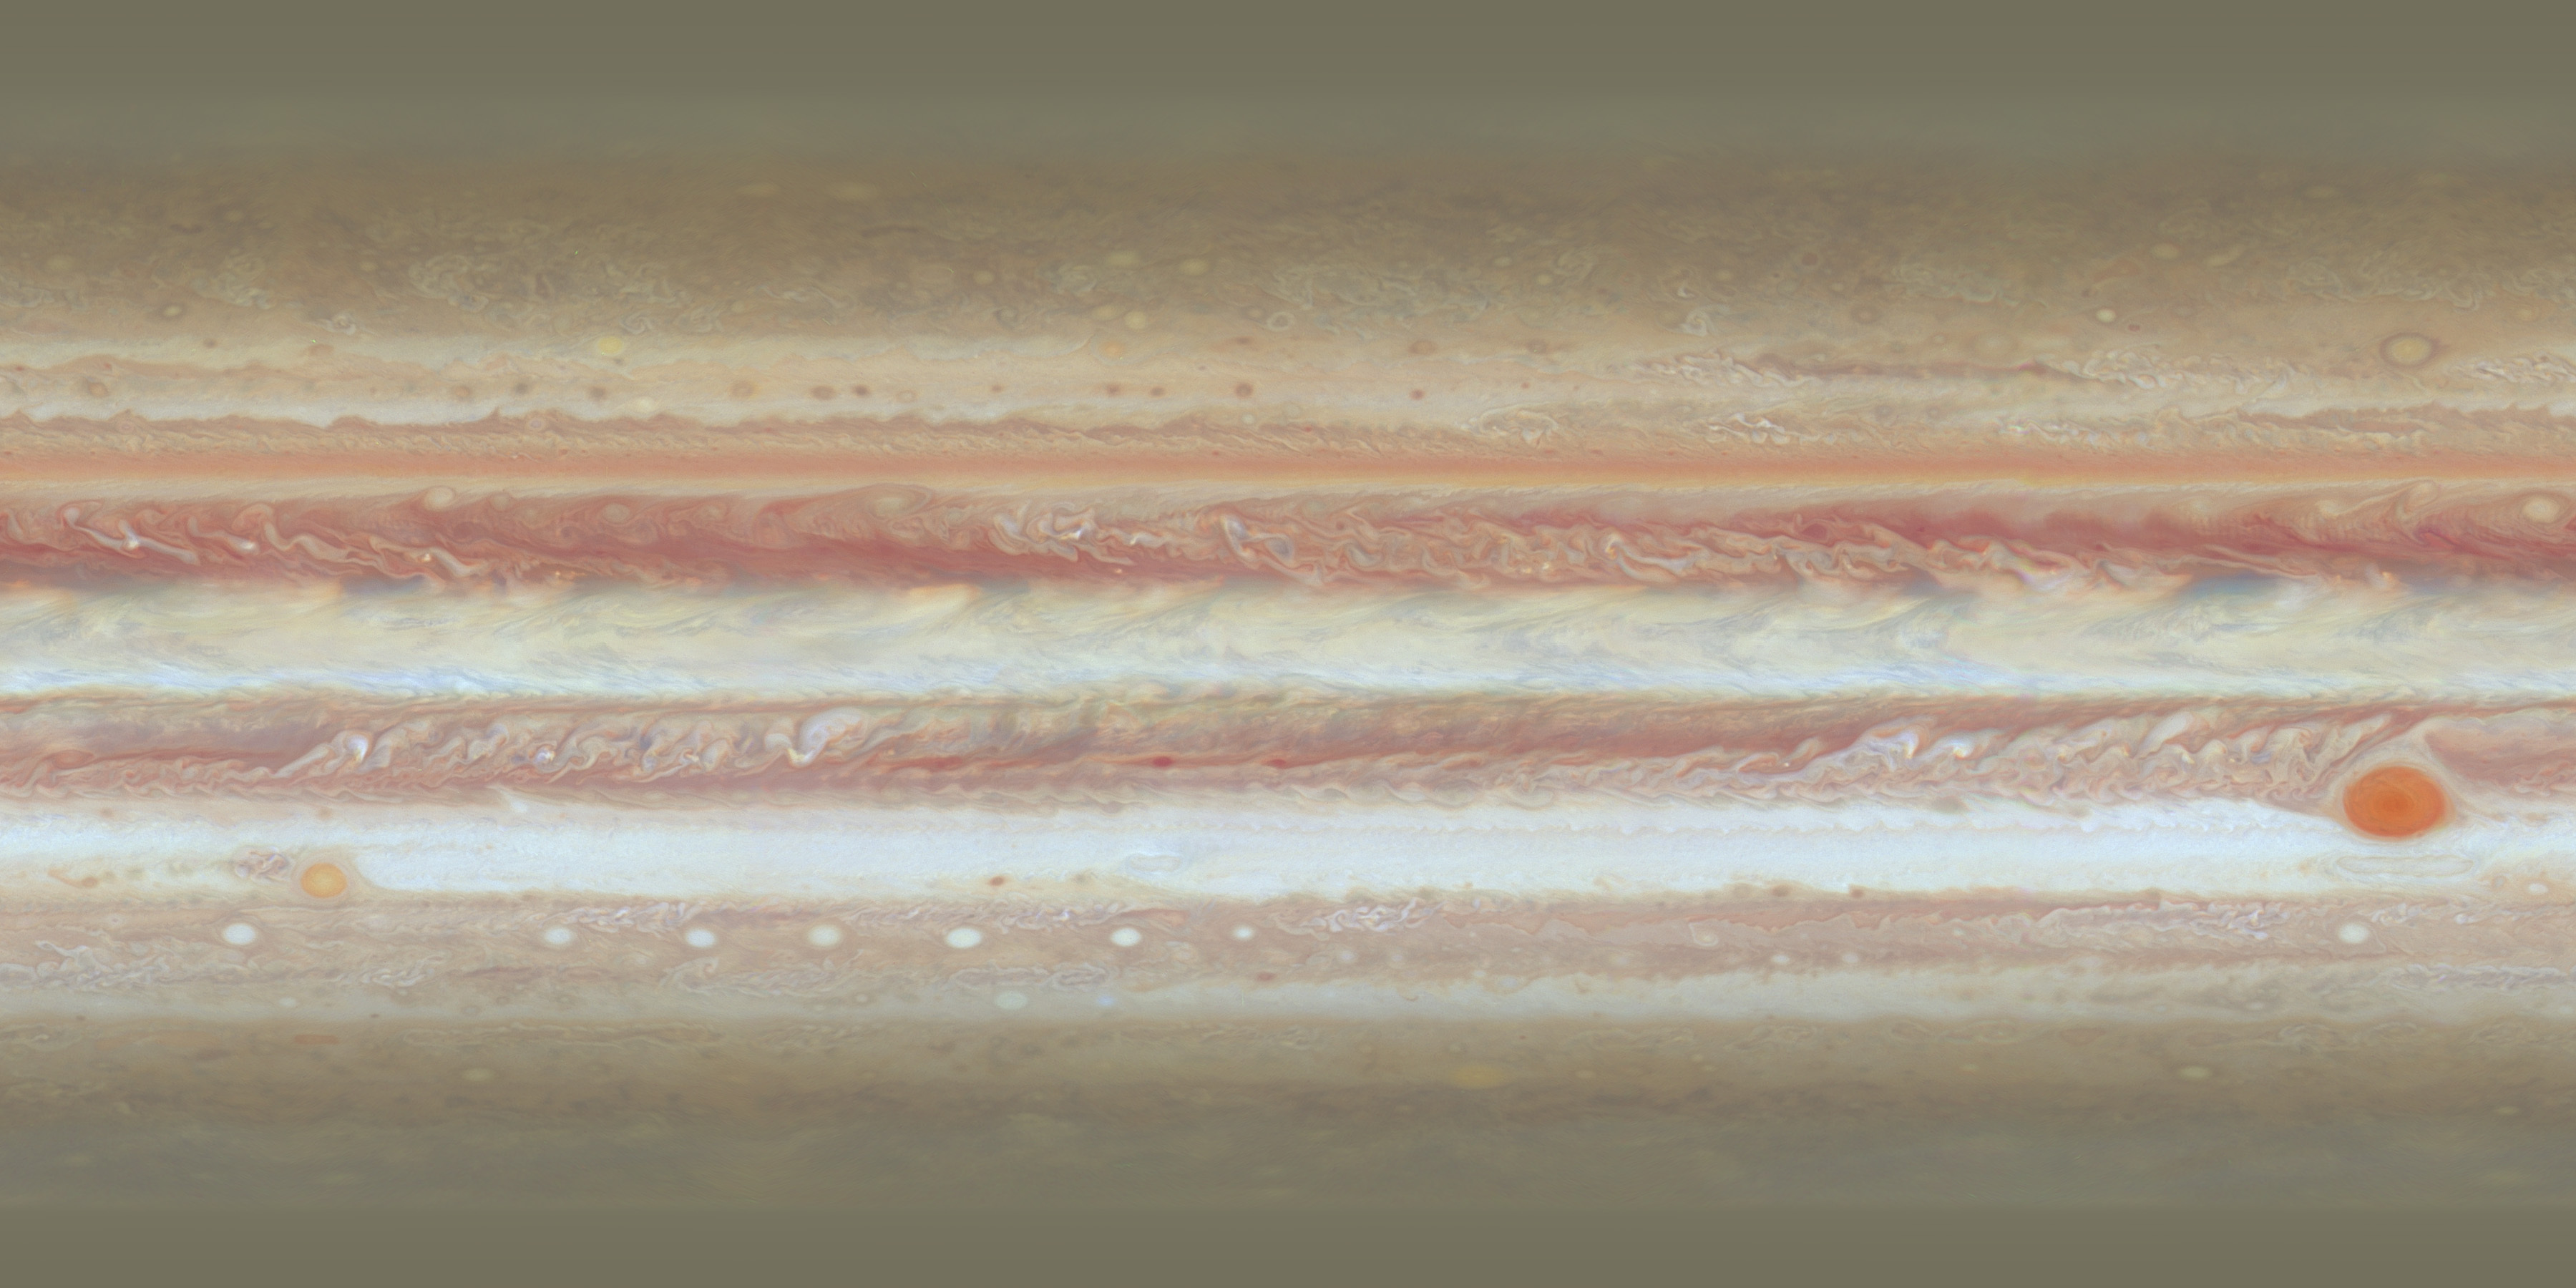 Jupiter texture map for animation | The Planetary Society